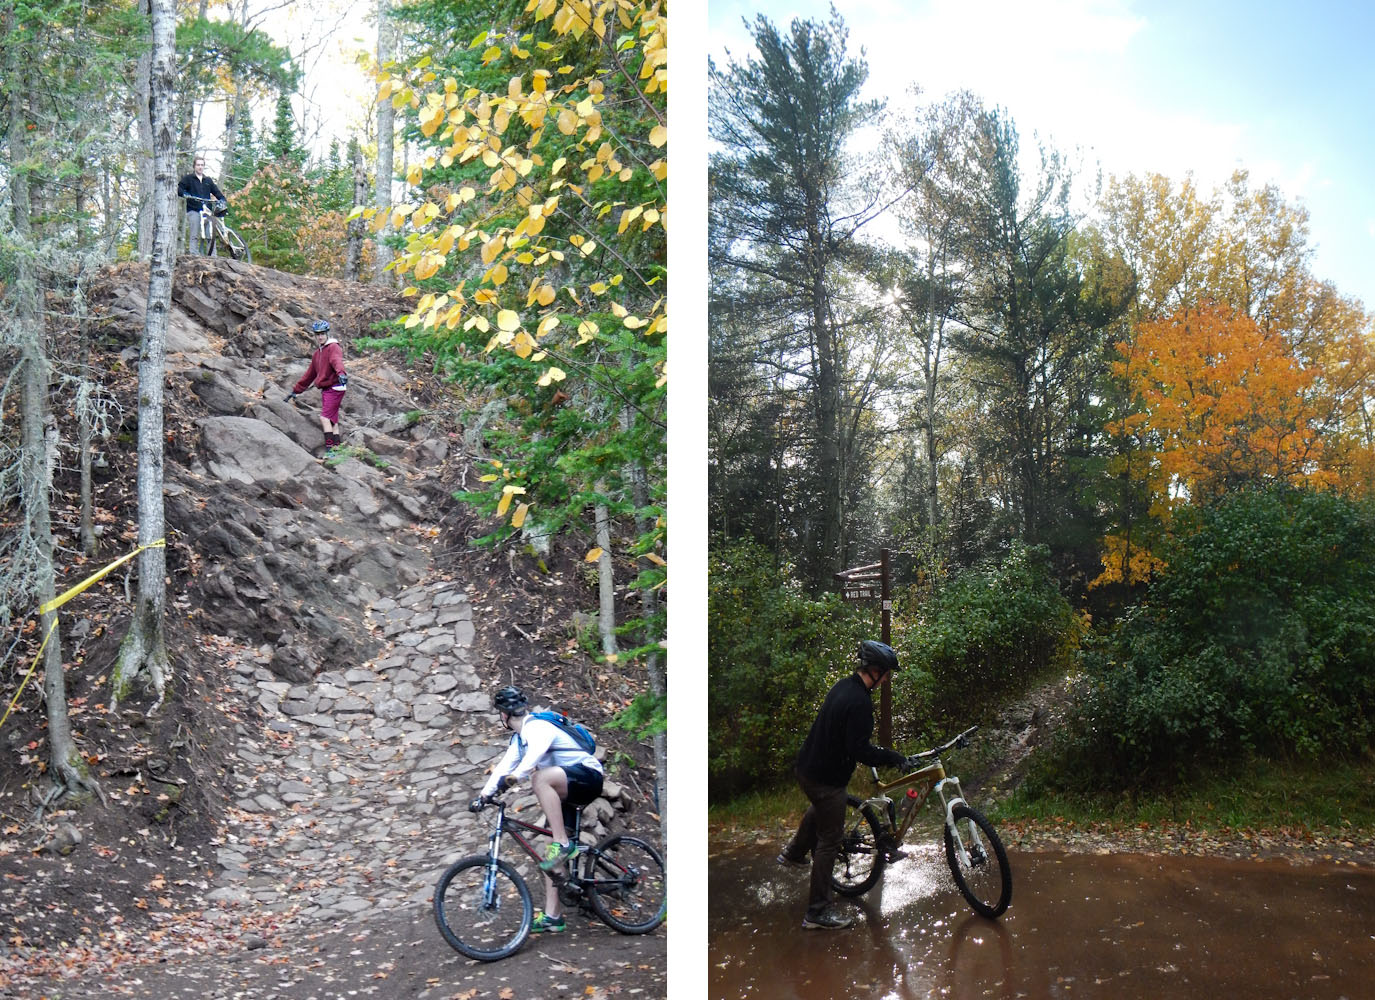 """The insane rock face dubbed """"Man pants"""" on the new Overflow downhill MTB trail at Copper Harbor"""